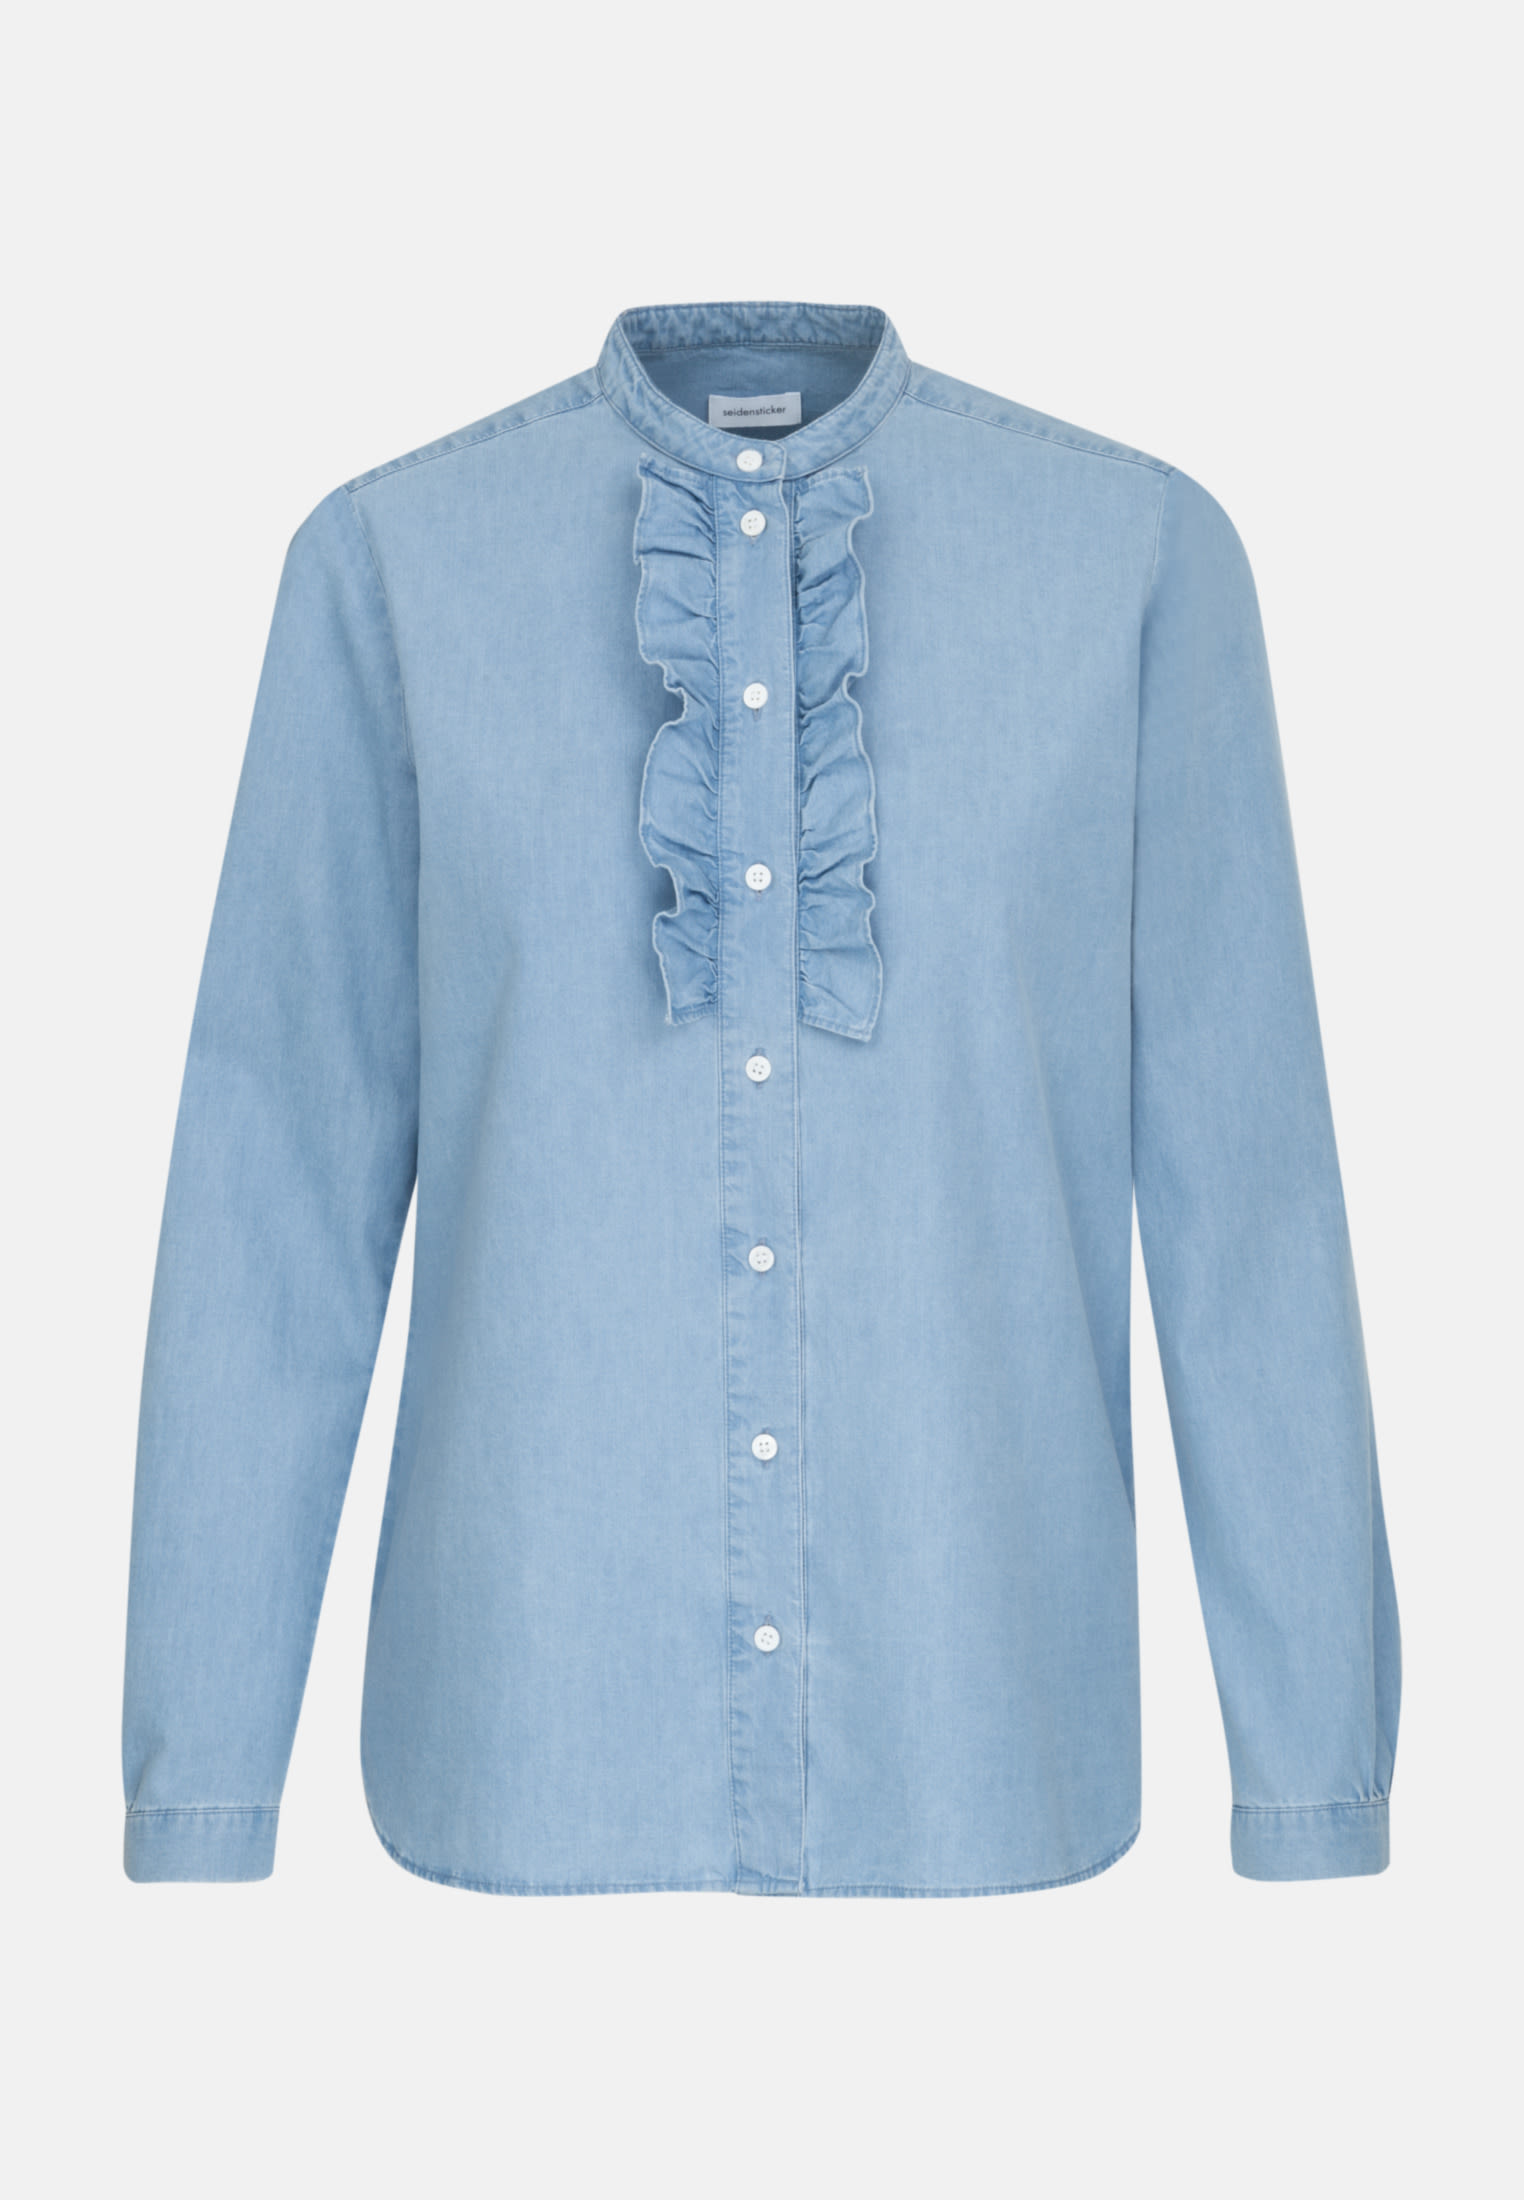 Denim Stand-Up Blouse made of 100% Cotton in Medium blue |  Seidensticker Onlineshop